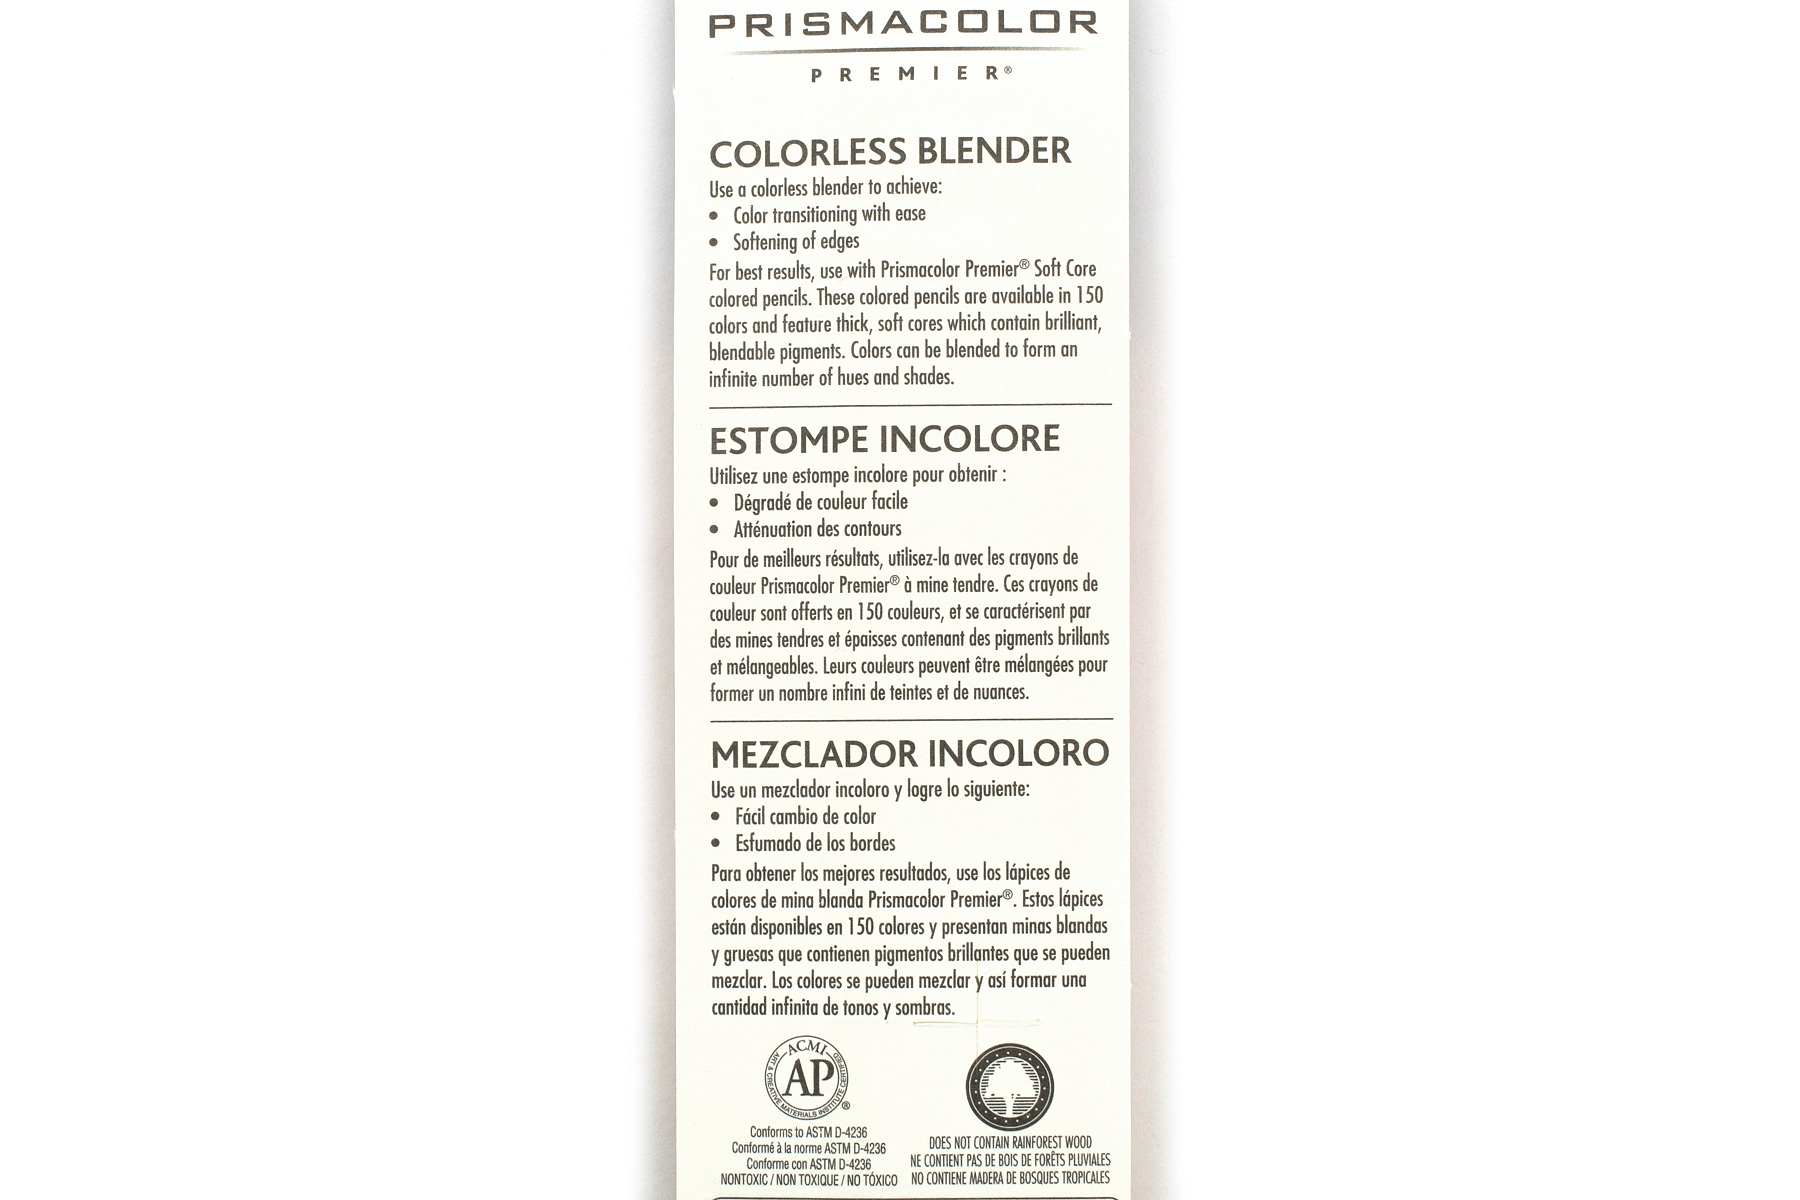 Prismacolor Premier Colorless Blender Pencil - Pack of 2 - PRISMACOLOR 962